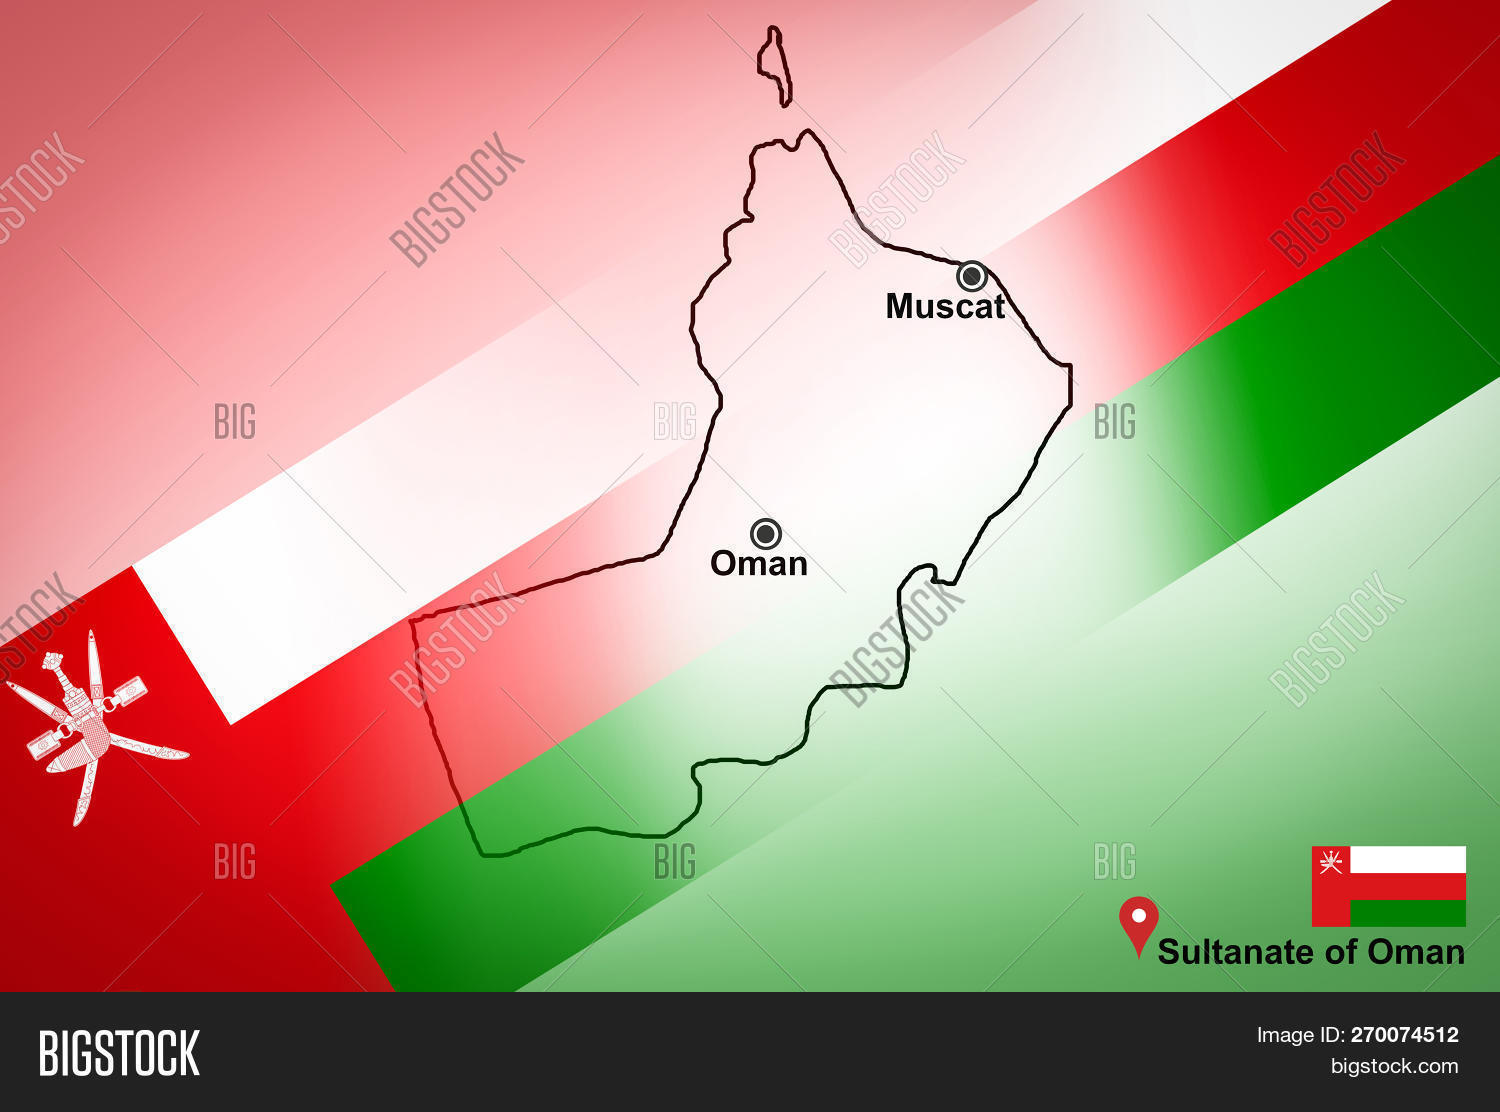 Oman Map Muscat Image & Photo (Free Trial) | Bigstock